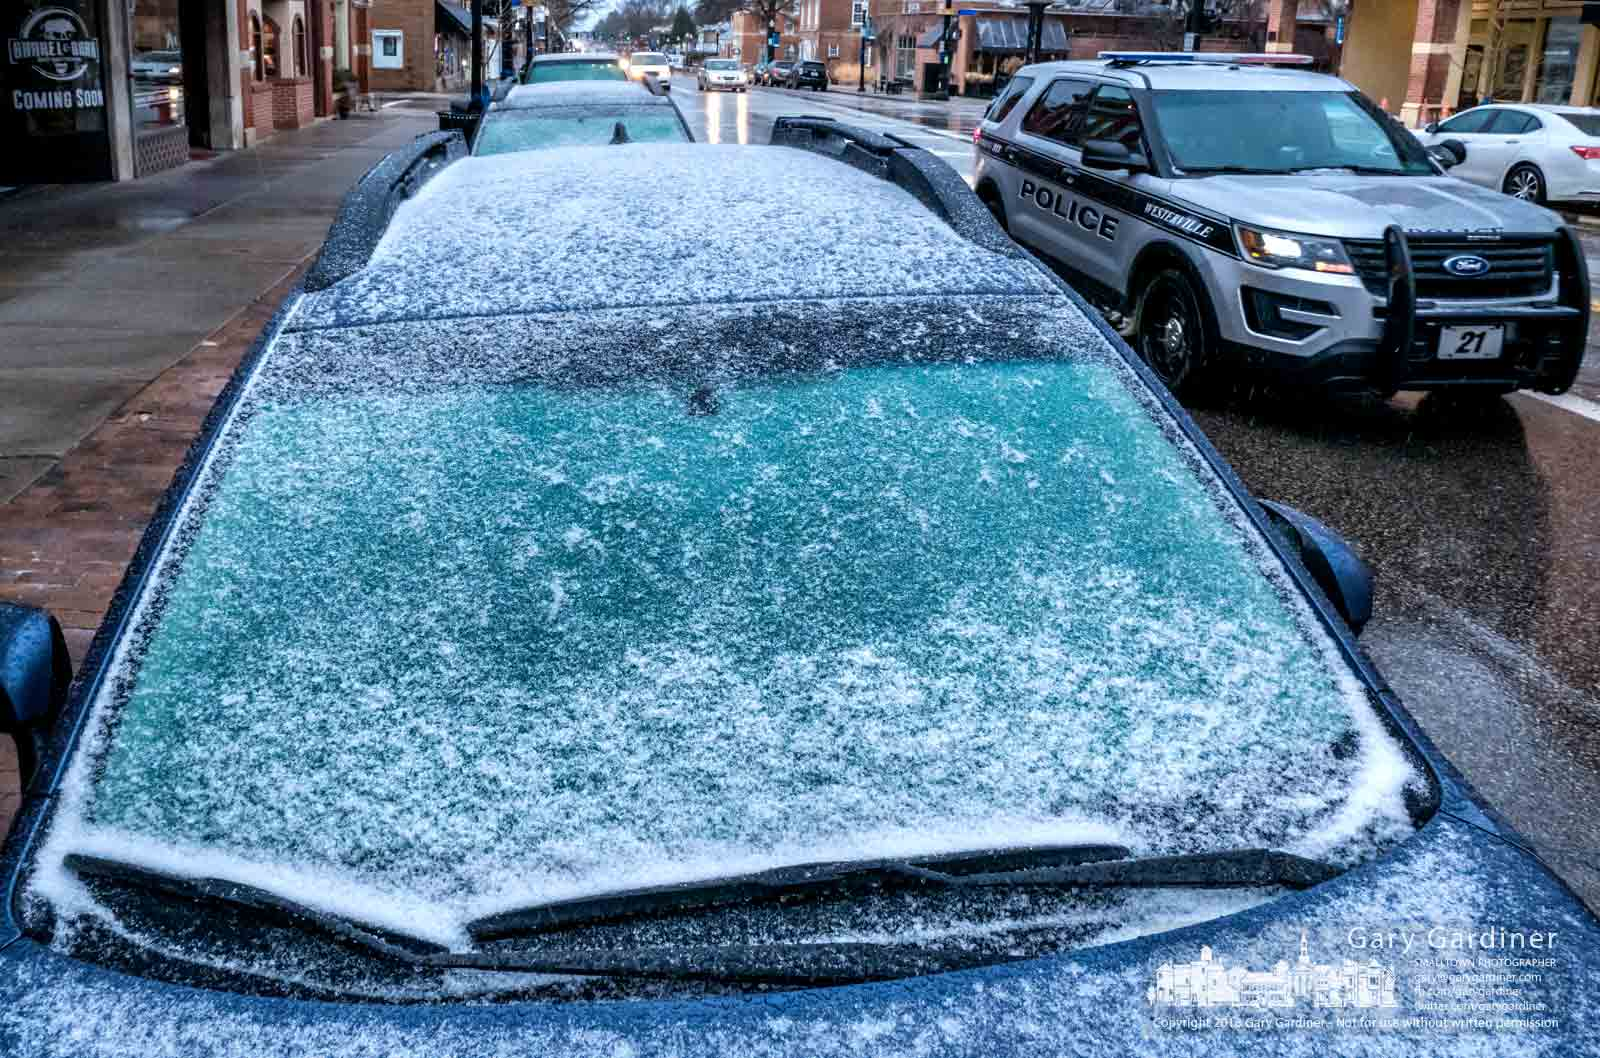 A Westerville Police officer passes a parked car in Uptown with its windshield covered in rain, sleet, and snow in later afternoon as the winter storm moved across Central Ohio. My Final Photo for Jan. 12, 2018.